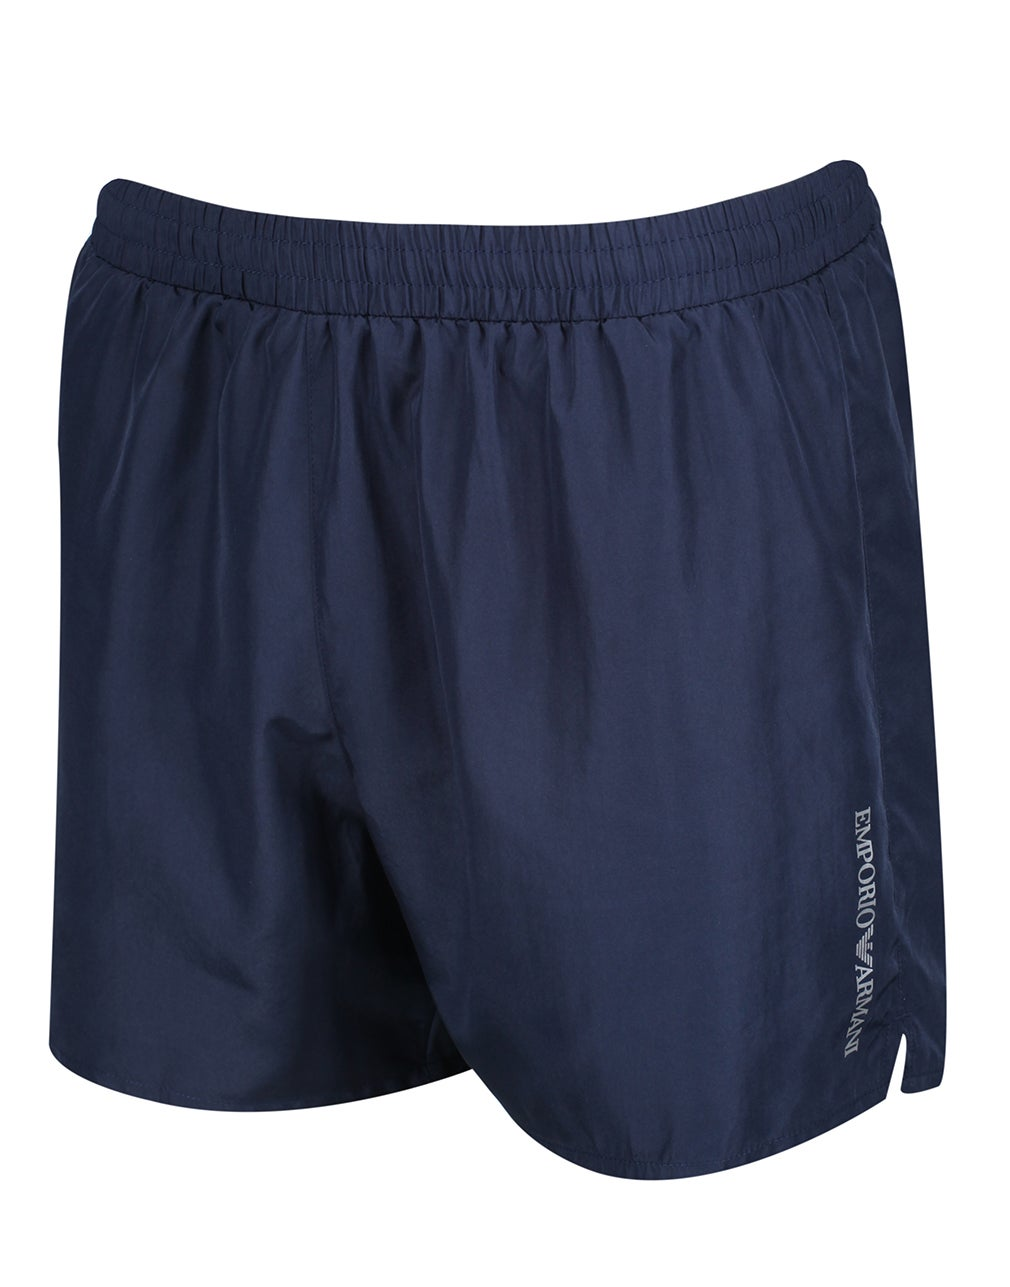 Emporio Armani Ultra Light Packable Swim Shorts